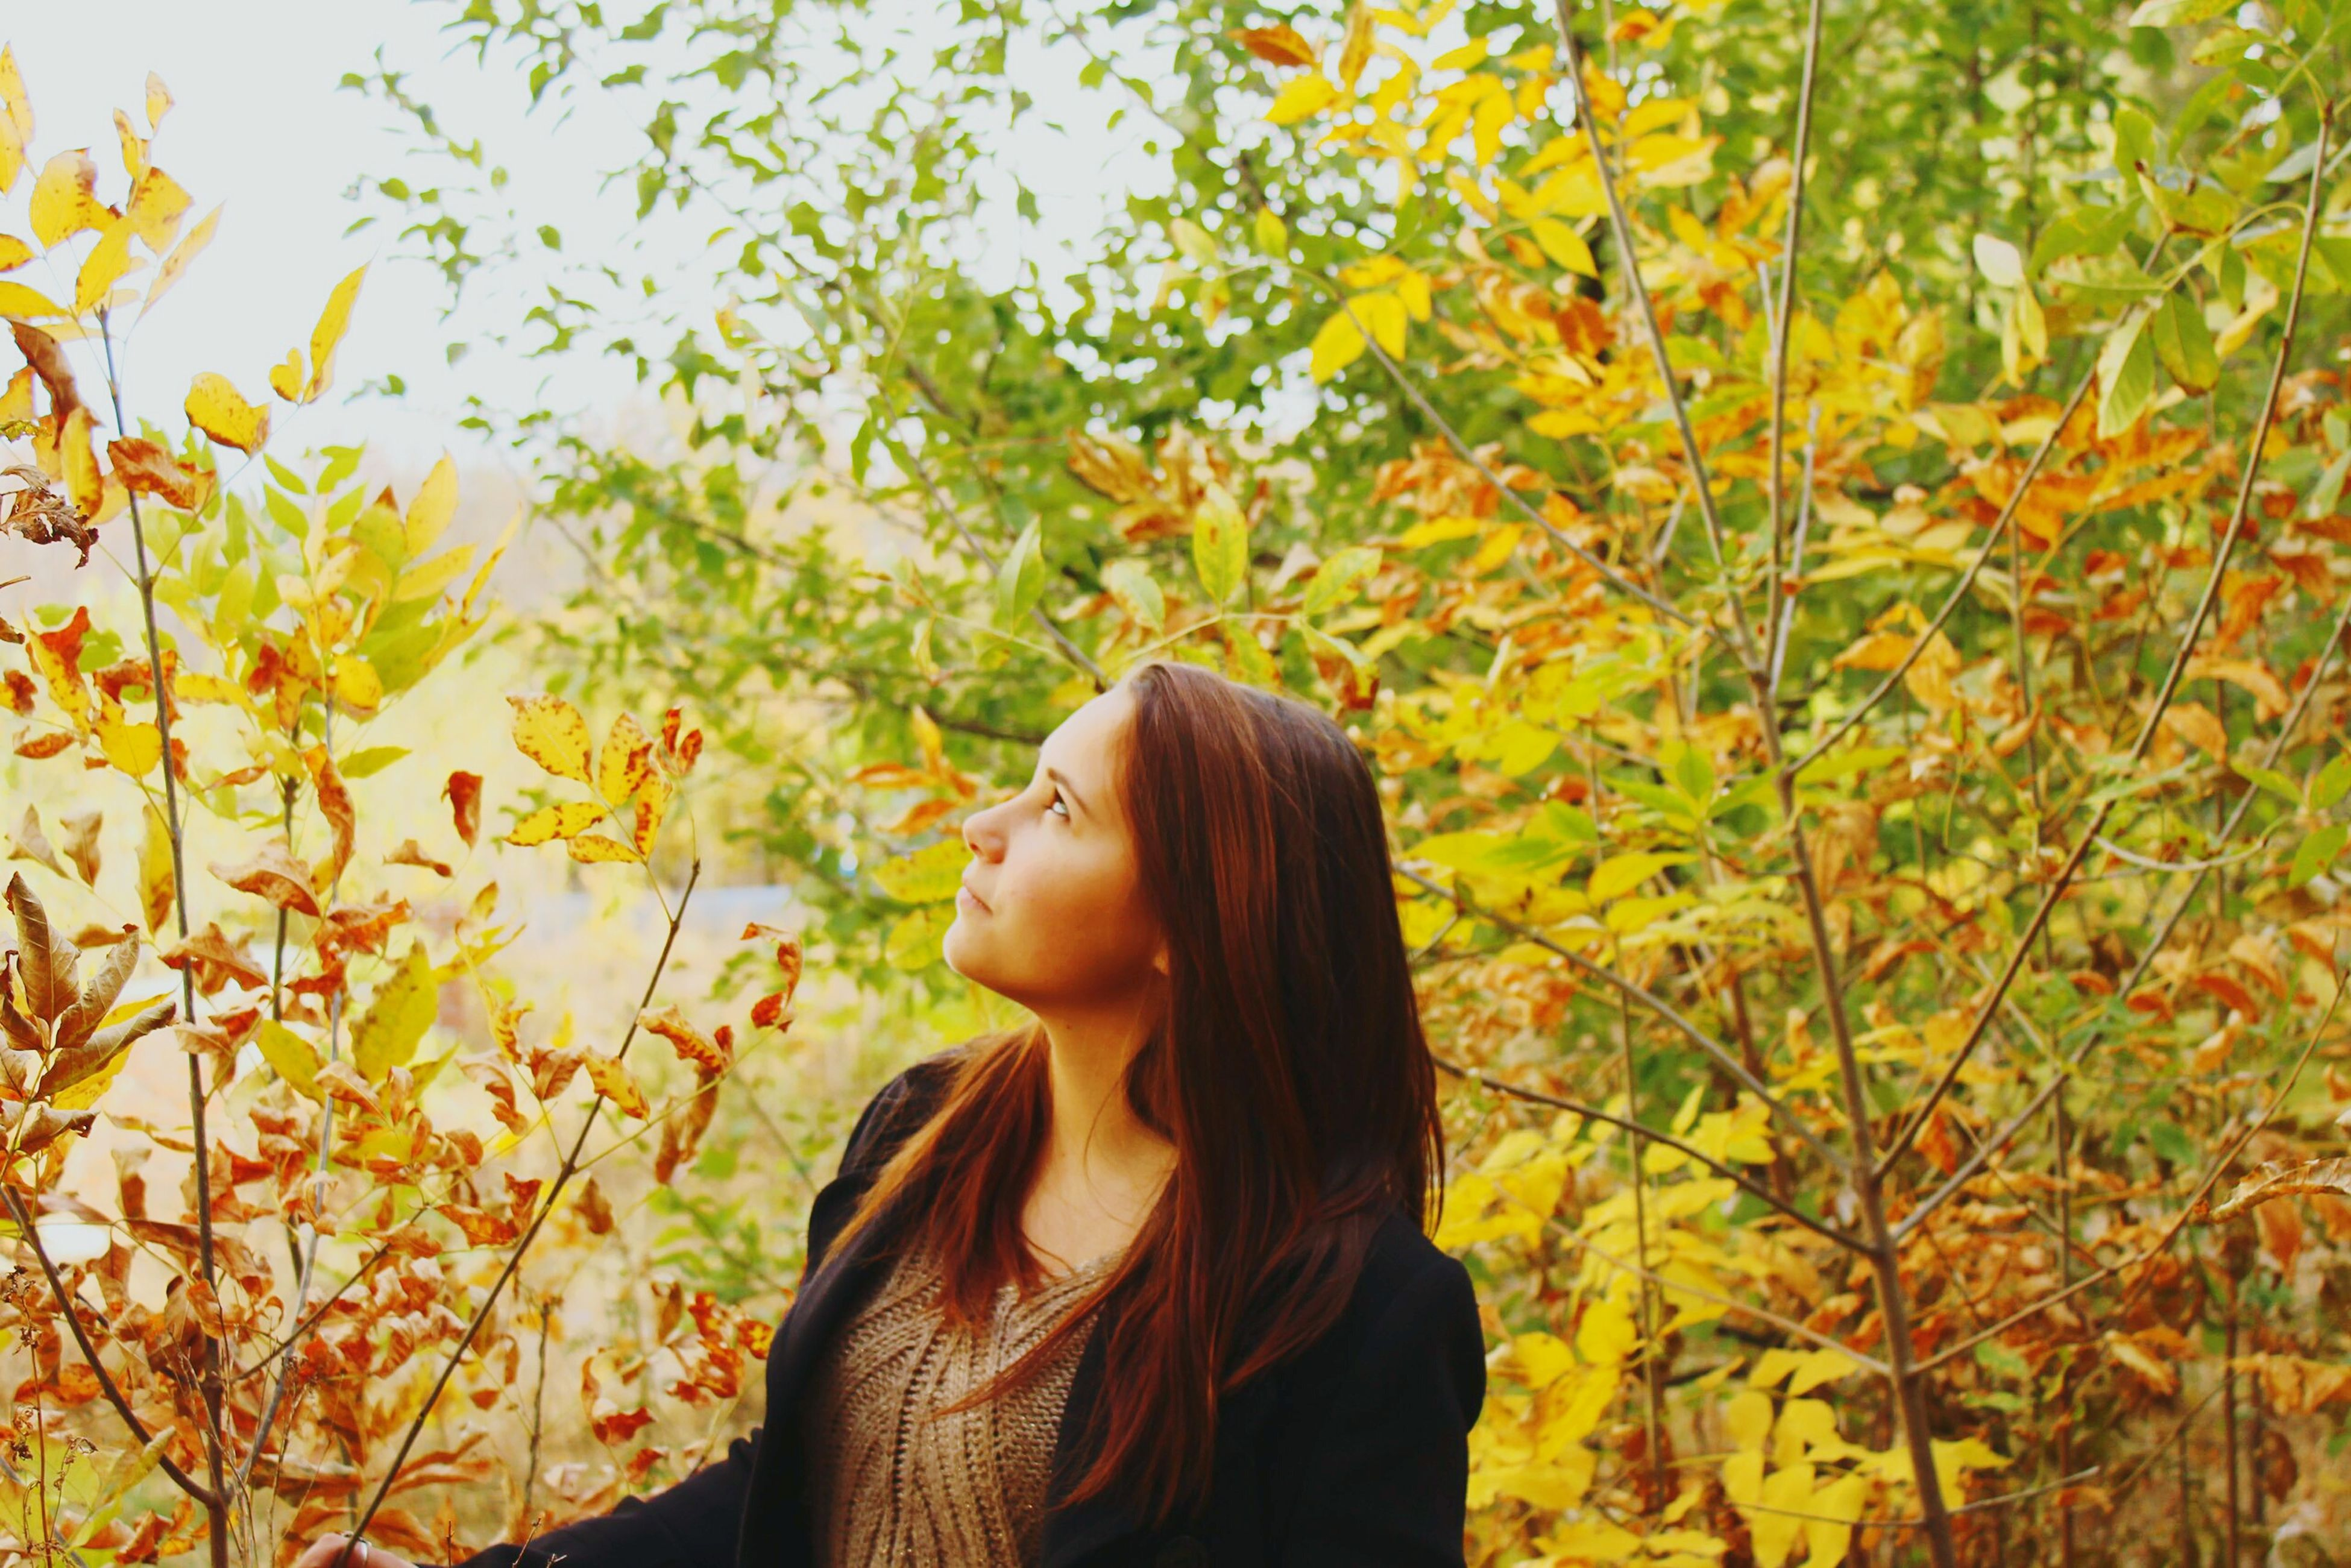 young adult, long hair, young women, tree, lifestyles, person, yellow, leisure activity, leaf, casual clothing, standing, waist up, growth, nature, headshot, brown hair, autumn